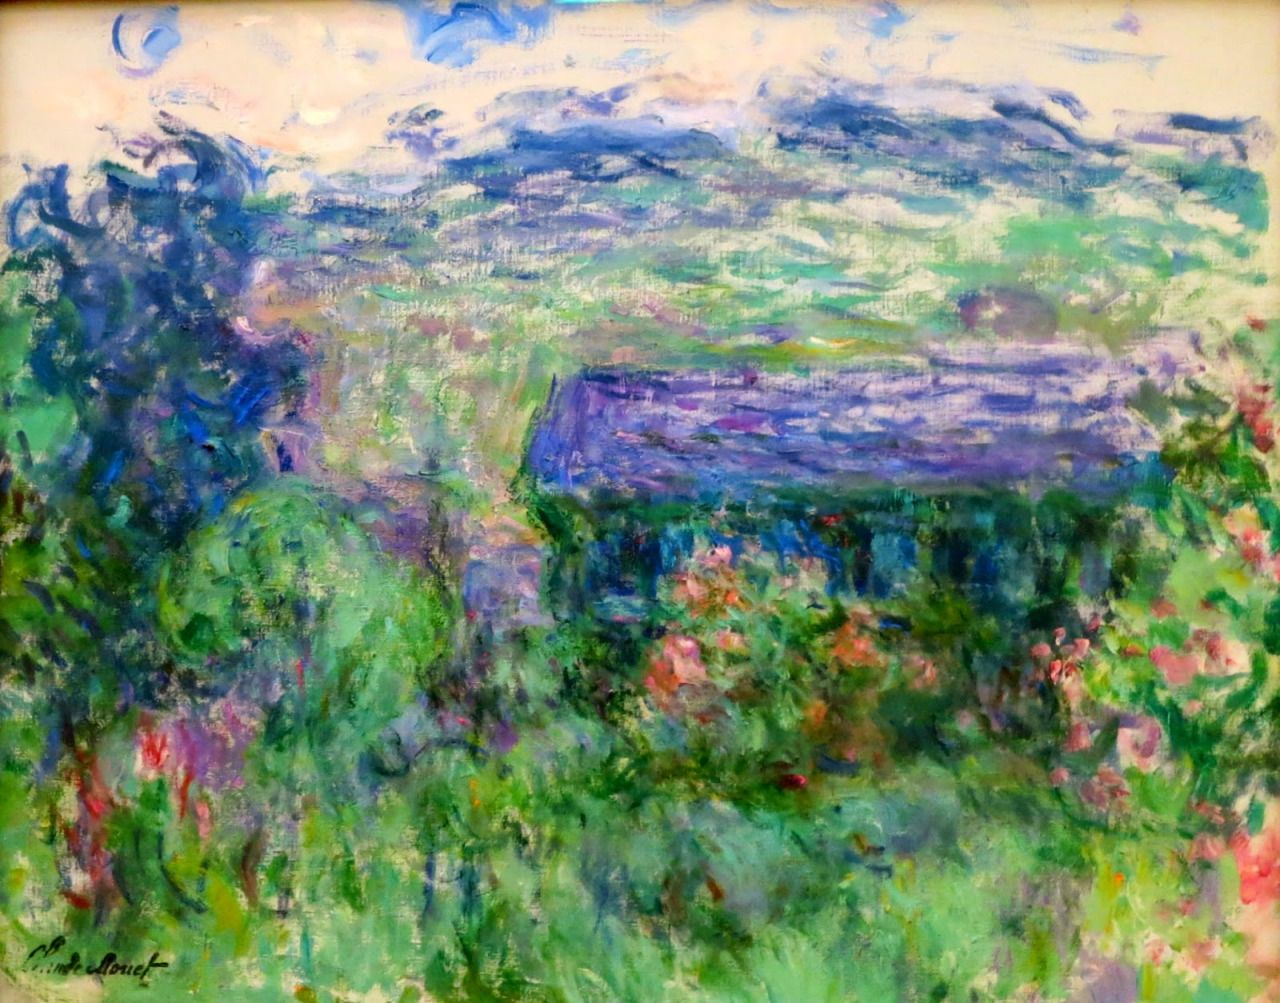 Claude Monet, The House among the Roses, 1925-26